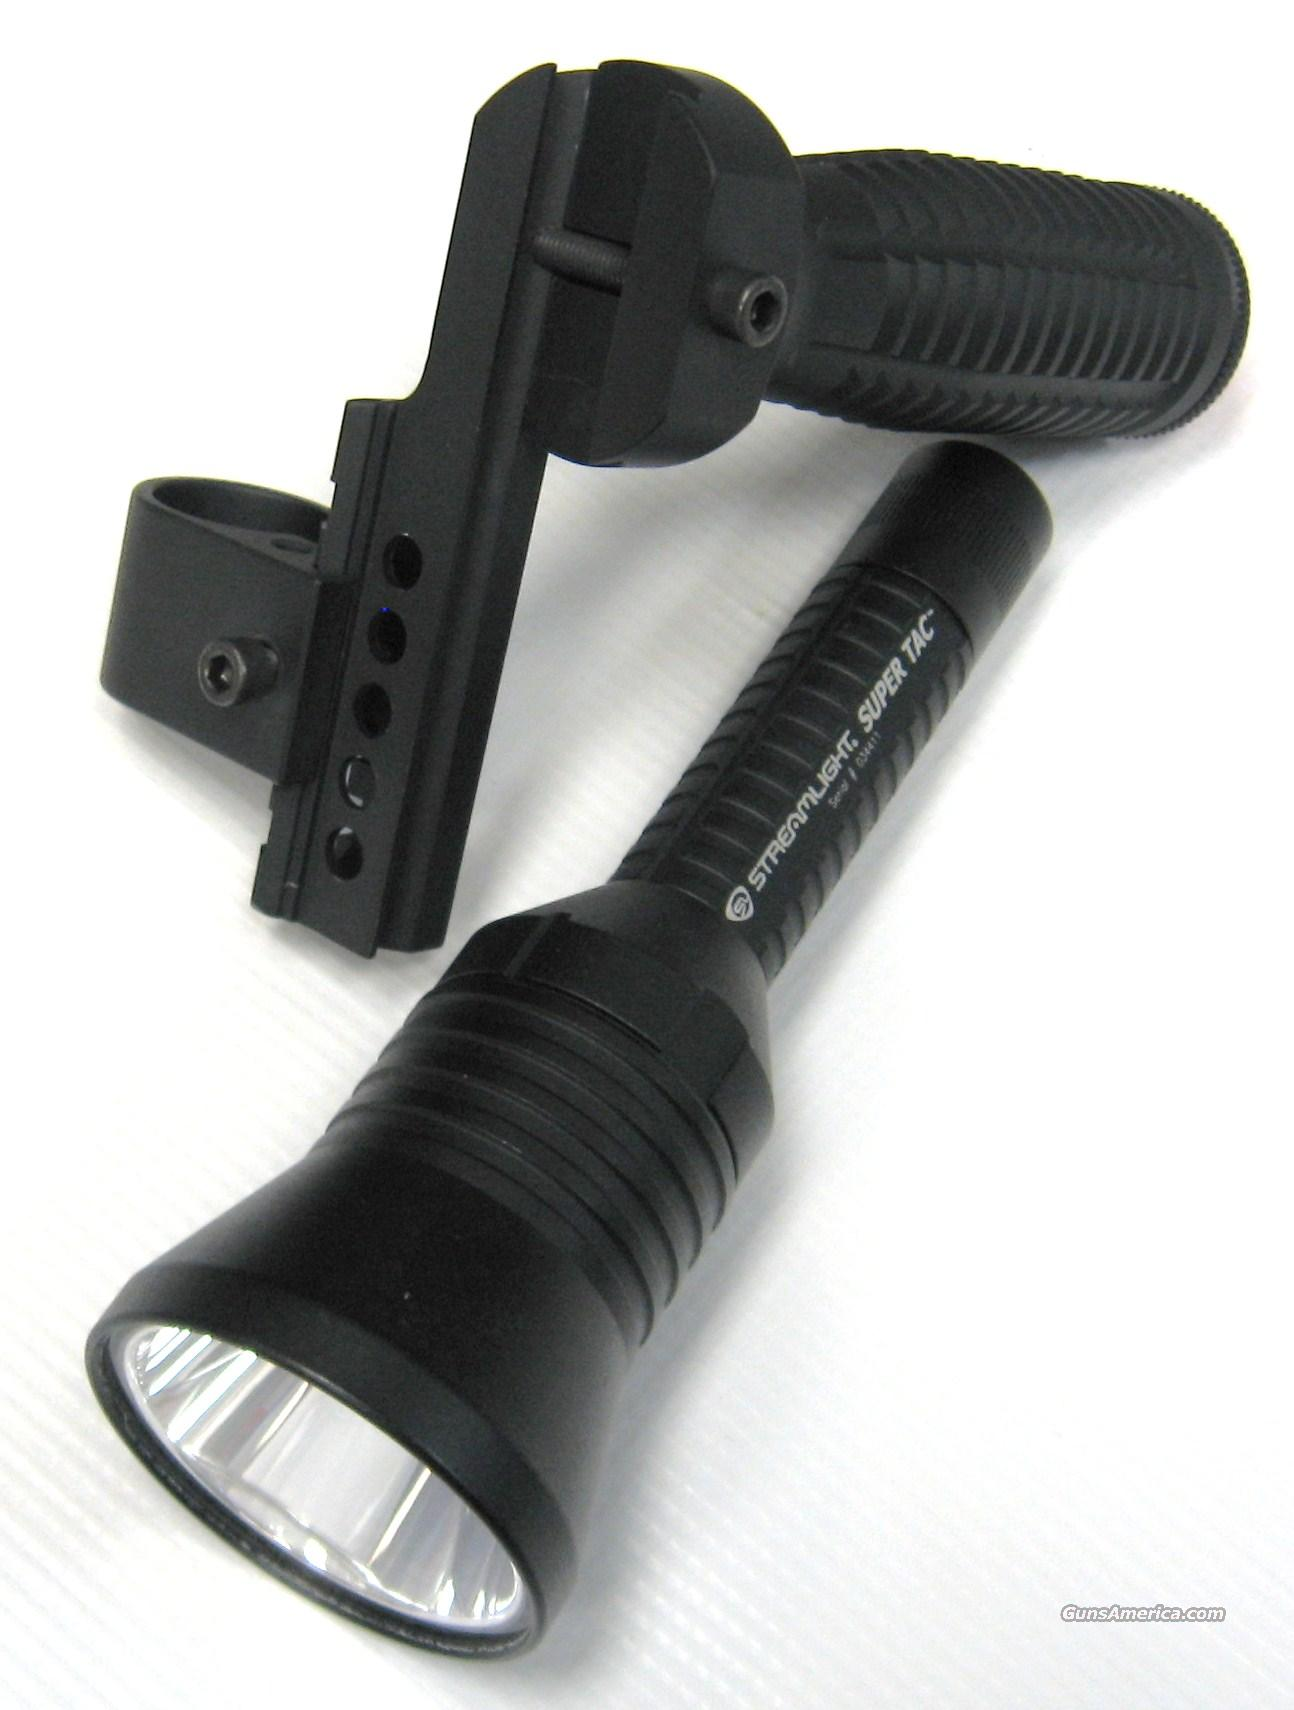 Streamlight Super Tac Tactical Light w/ Mount  Non-Guns > Lights > Tactical